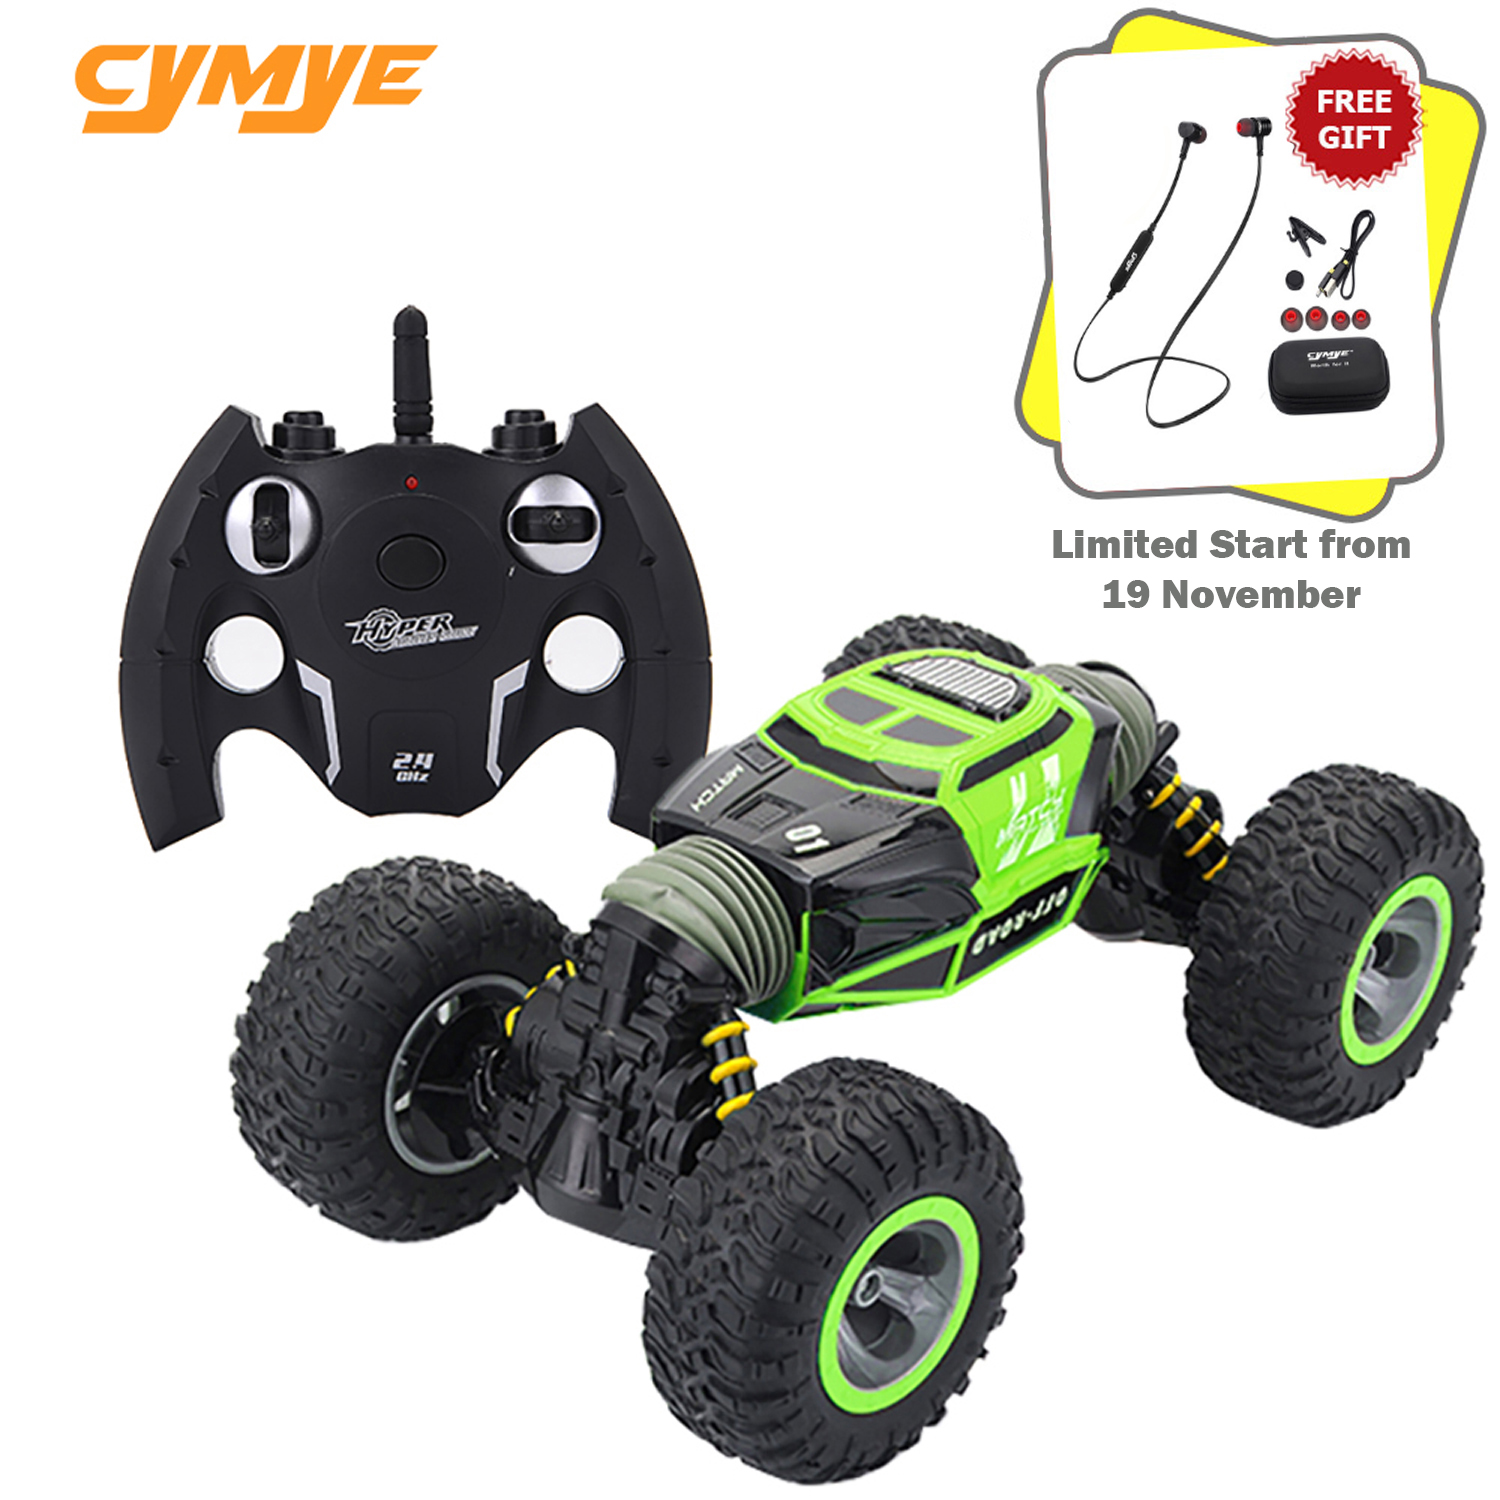 Cymye RC Car 4WD Double-sided 2.4GHz One Key Transformation All-terrain Vehicle Varanid Climbing Car Remote Control Truck image